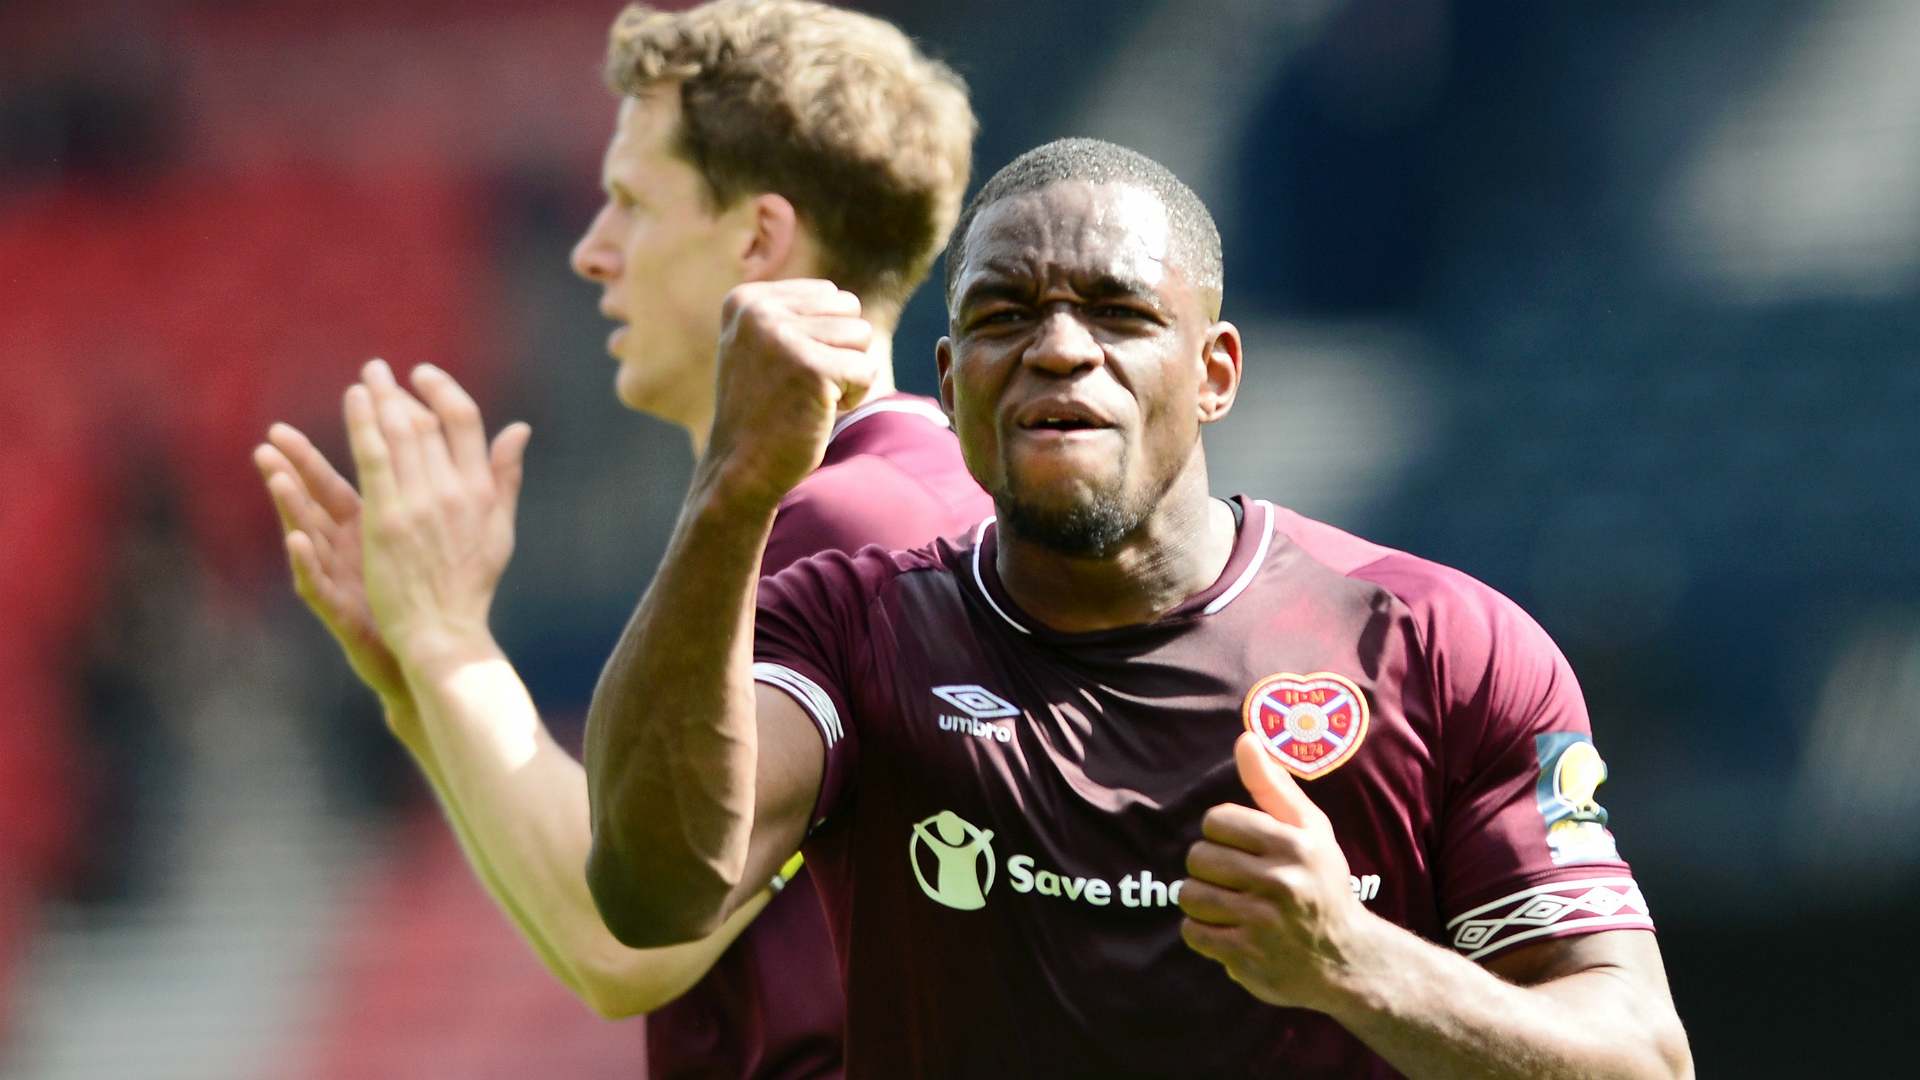 Hearts threaten legal action over 'unjust' relegation after Scottish Premiership curtailed by coronavirus